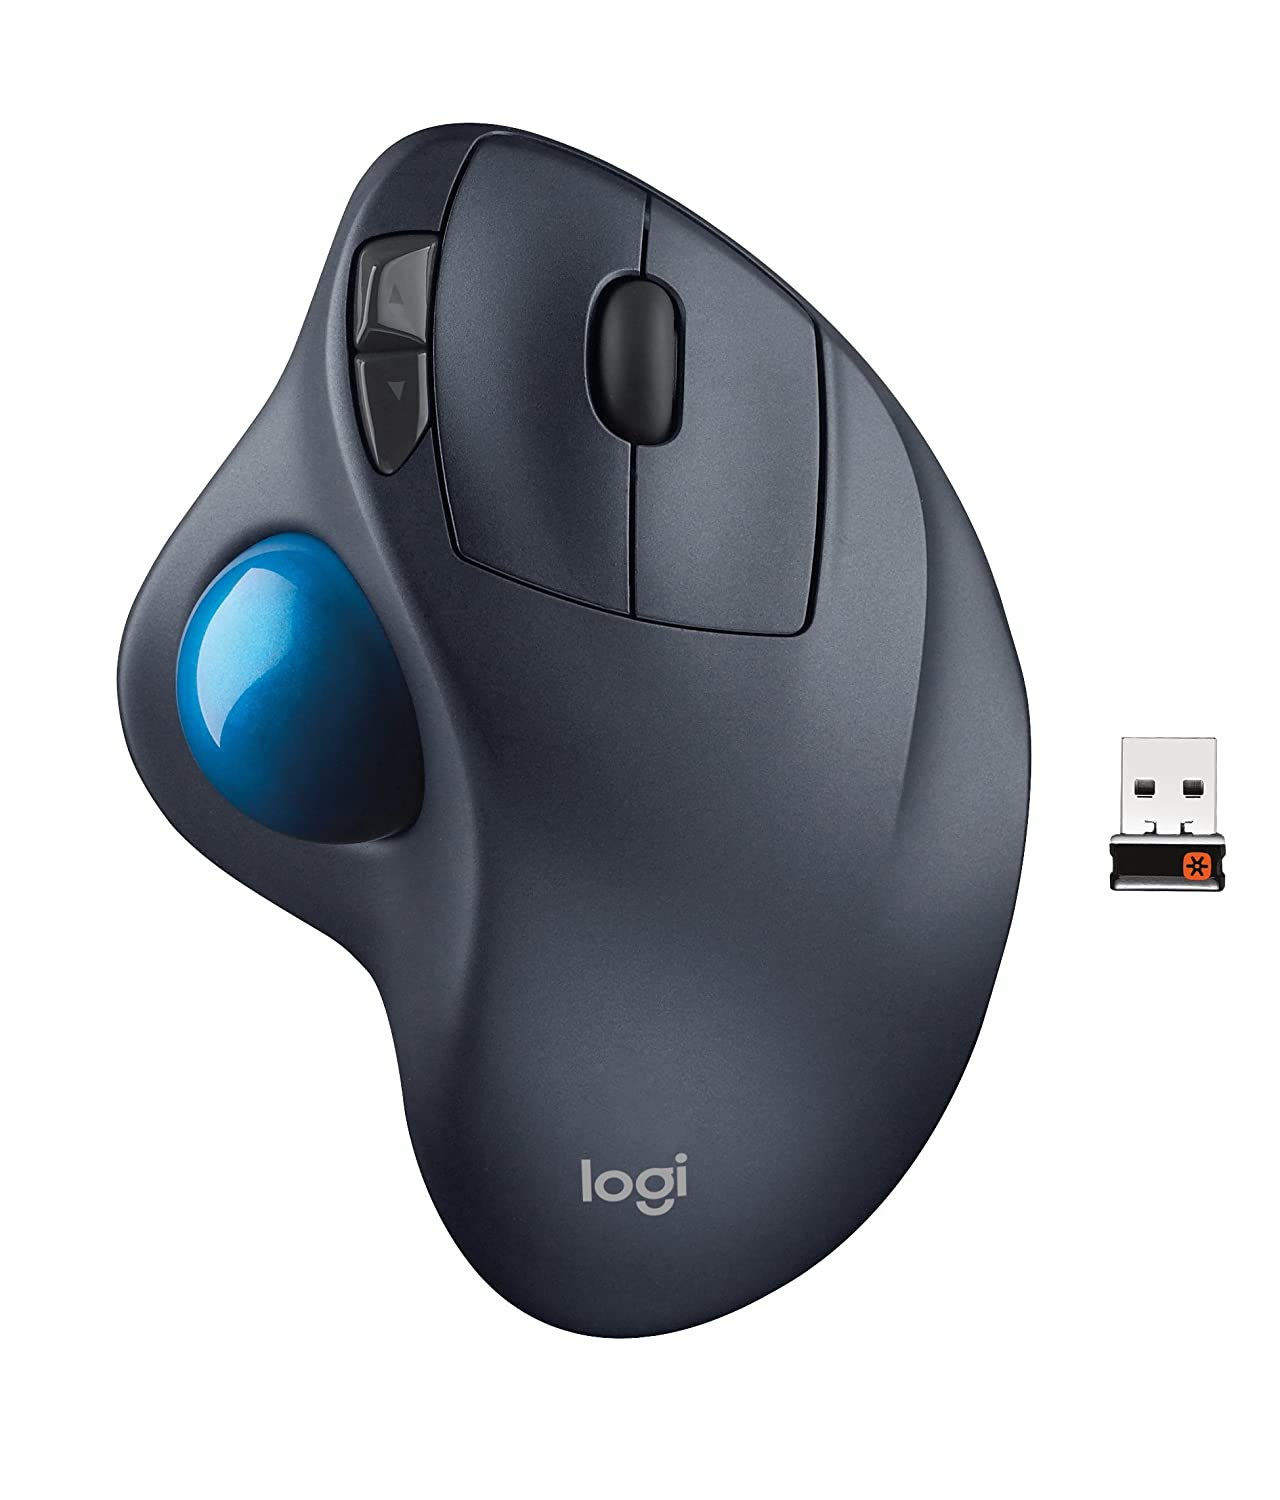 Logitech M570 Black Friday Deal 2020